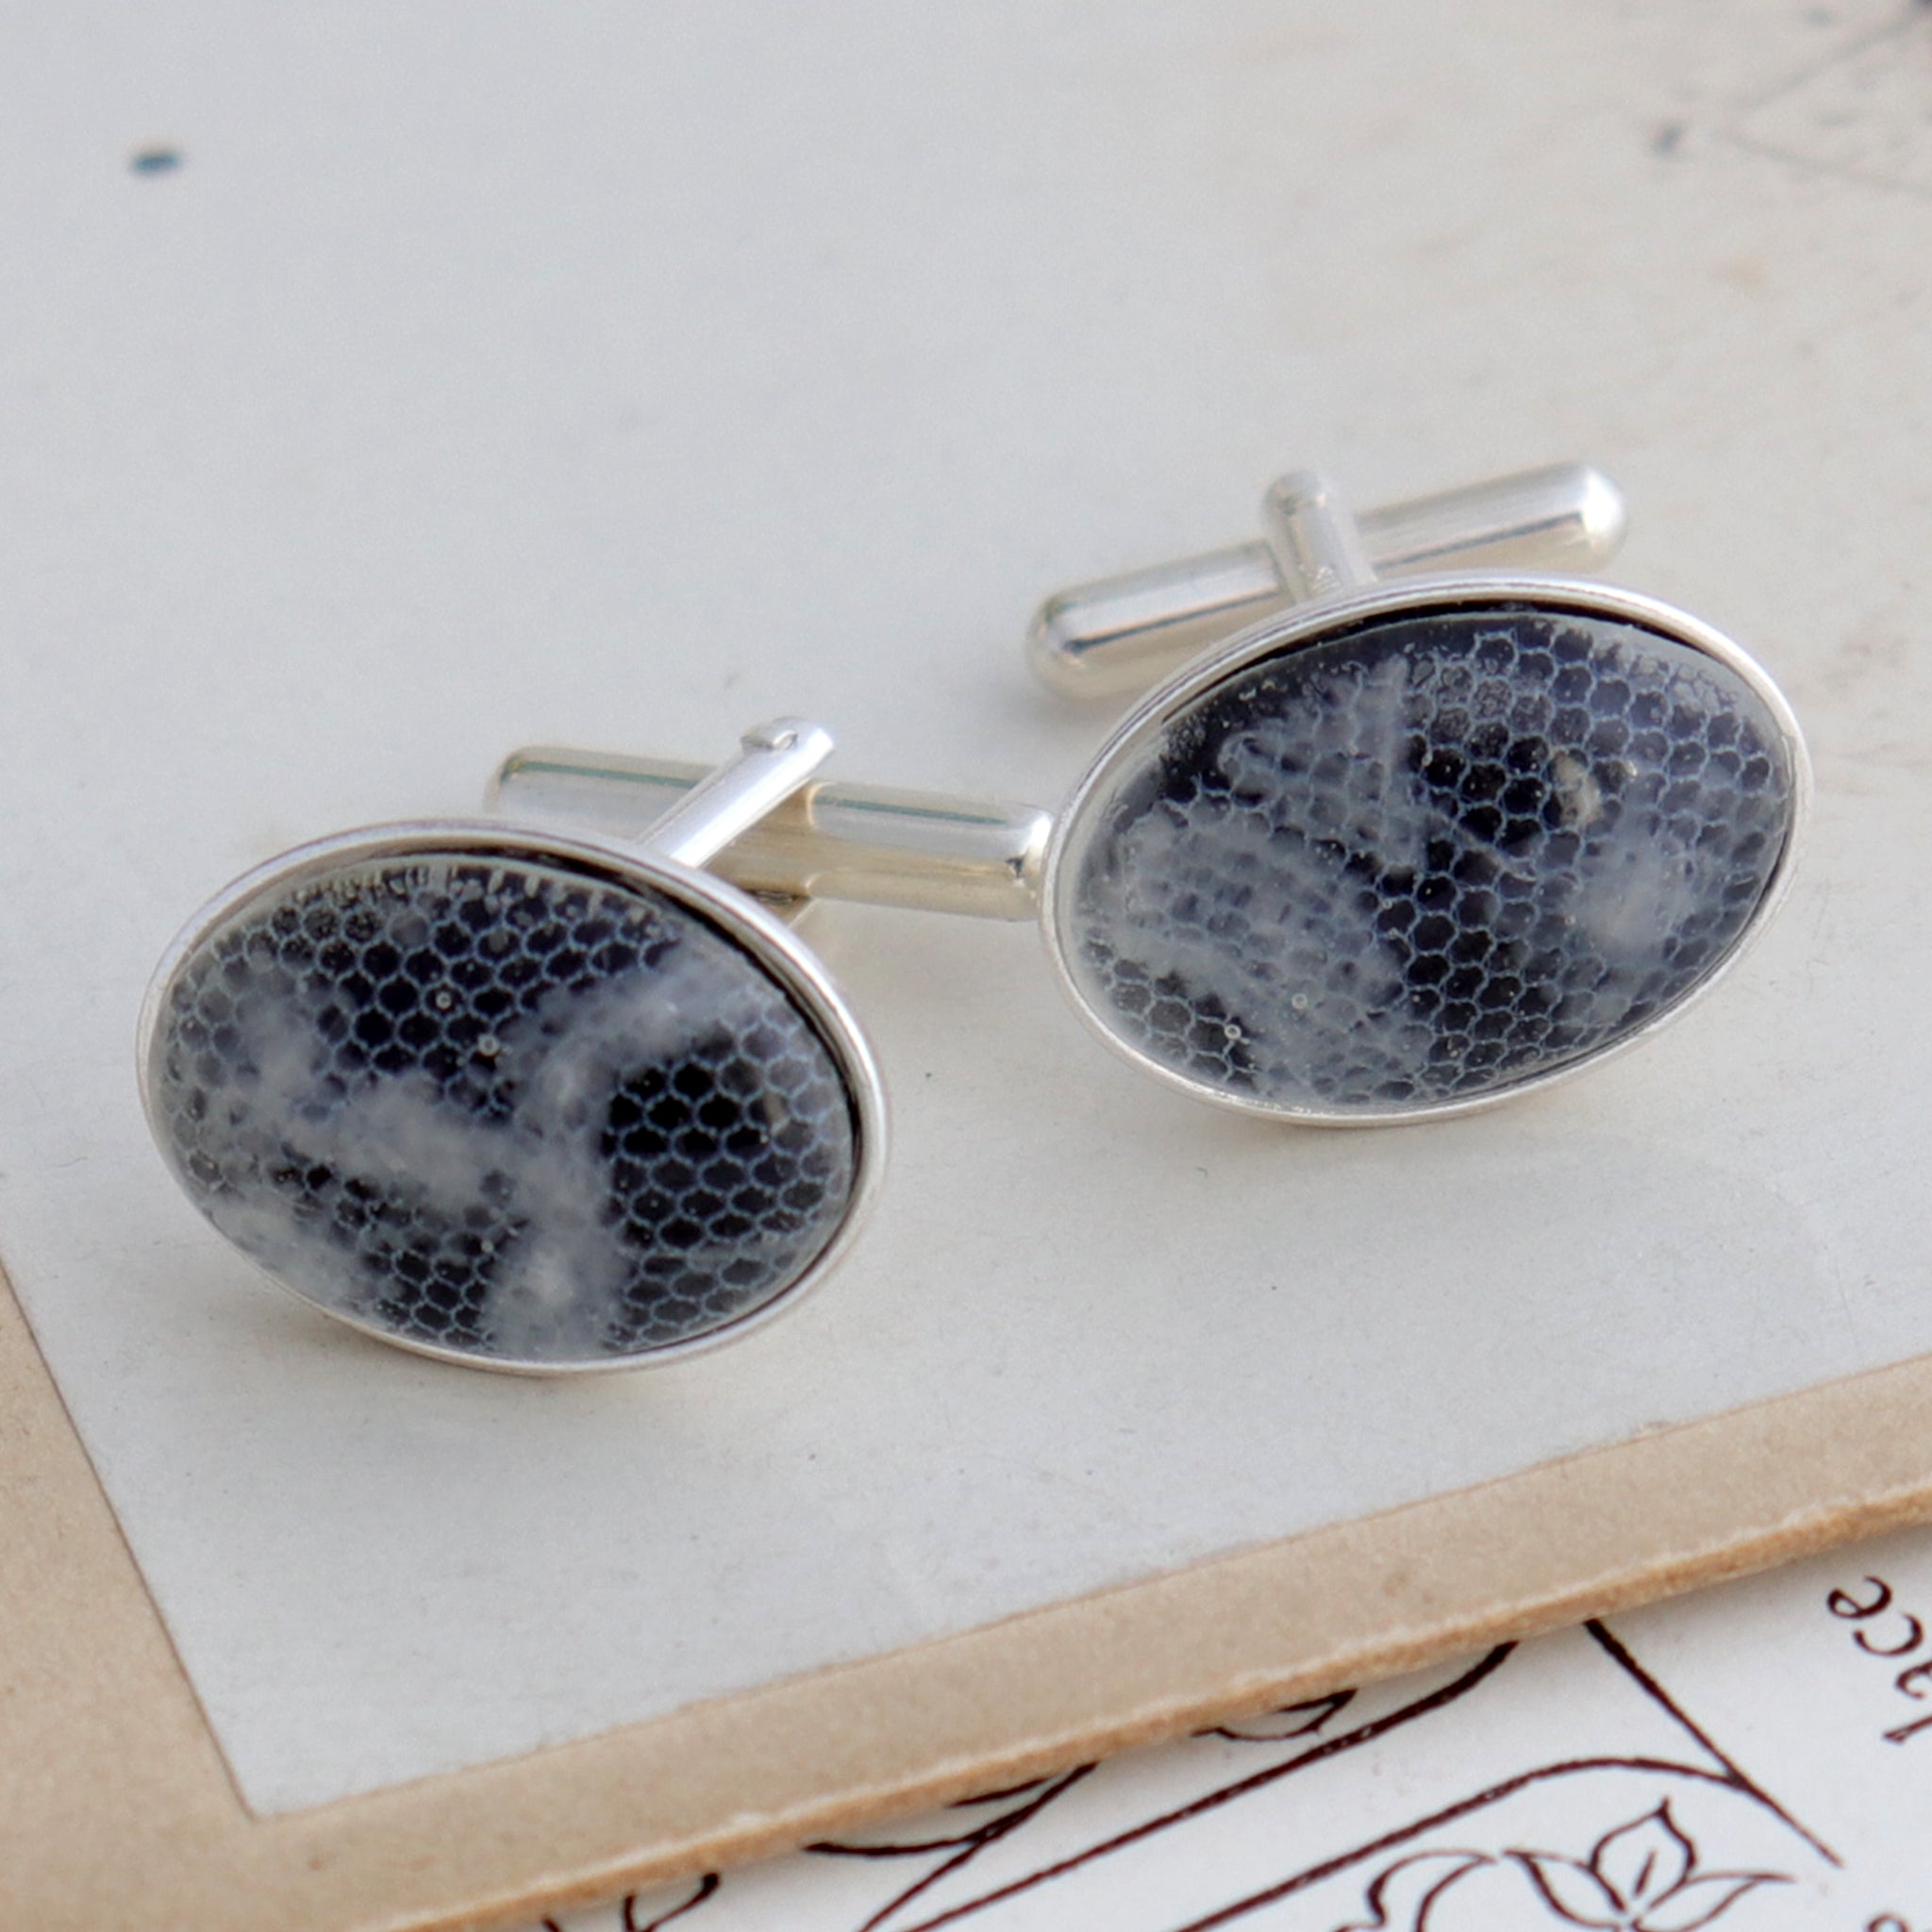 Sterling silver cufflinks with resin beads featuring lace from a bride's wedding dress